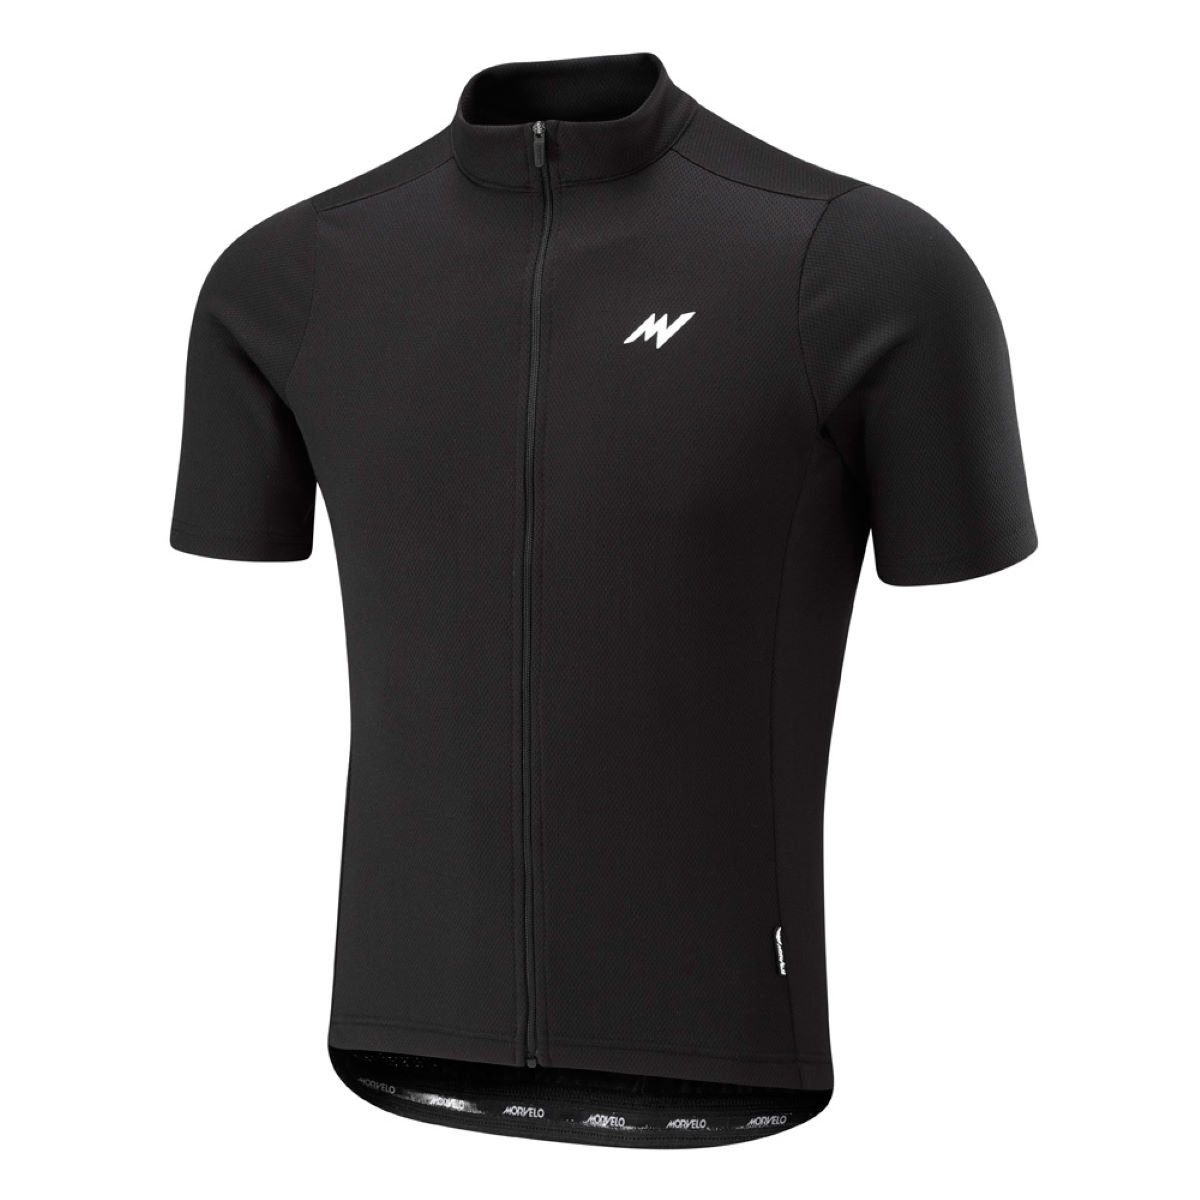 Maillot Morvelo Stealth (manches courtes) - M Stealth